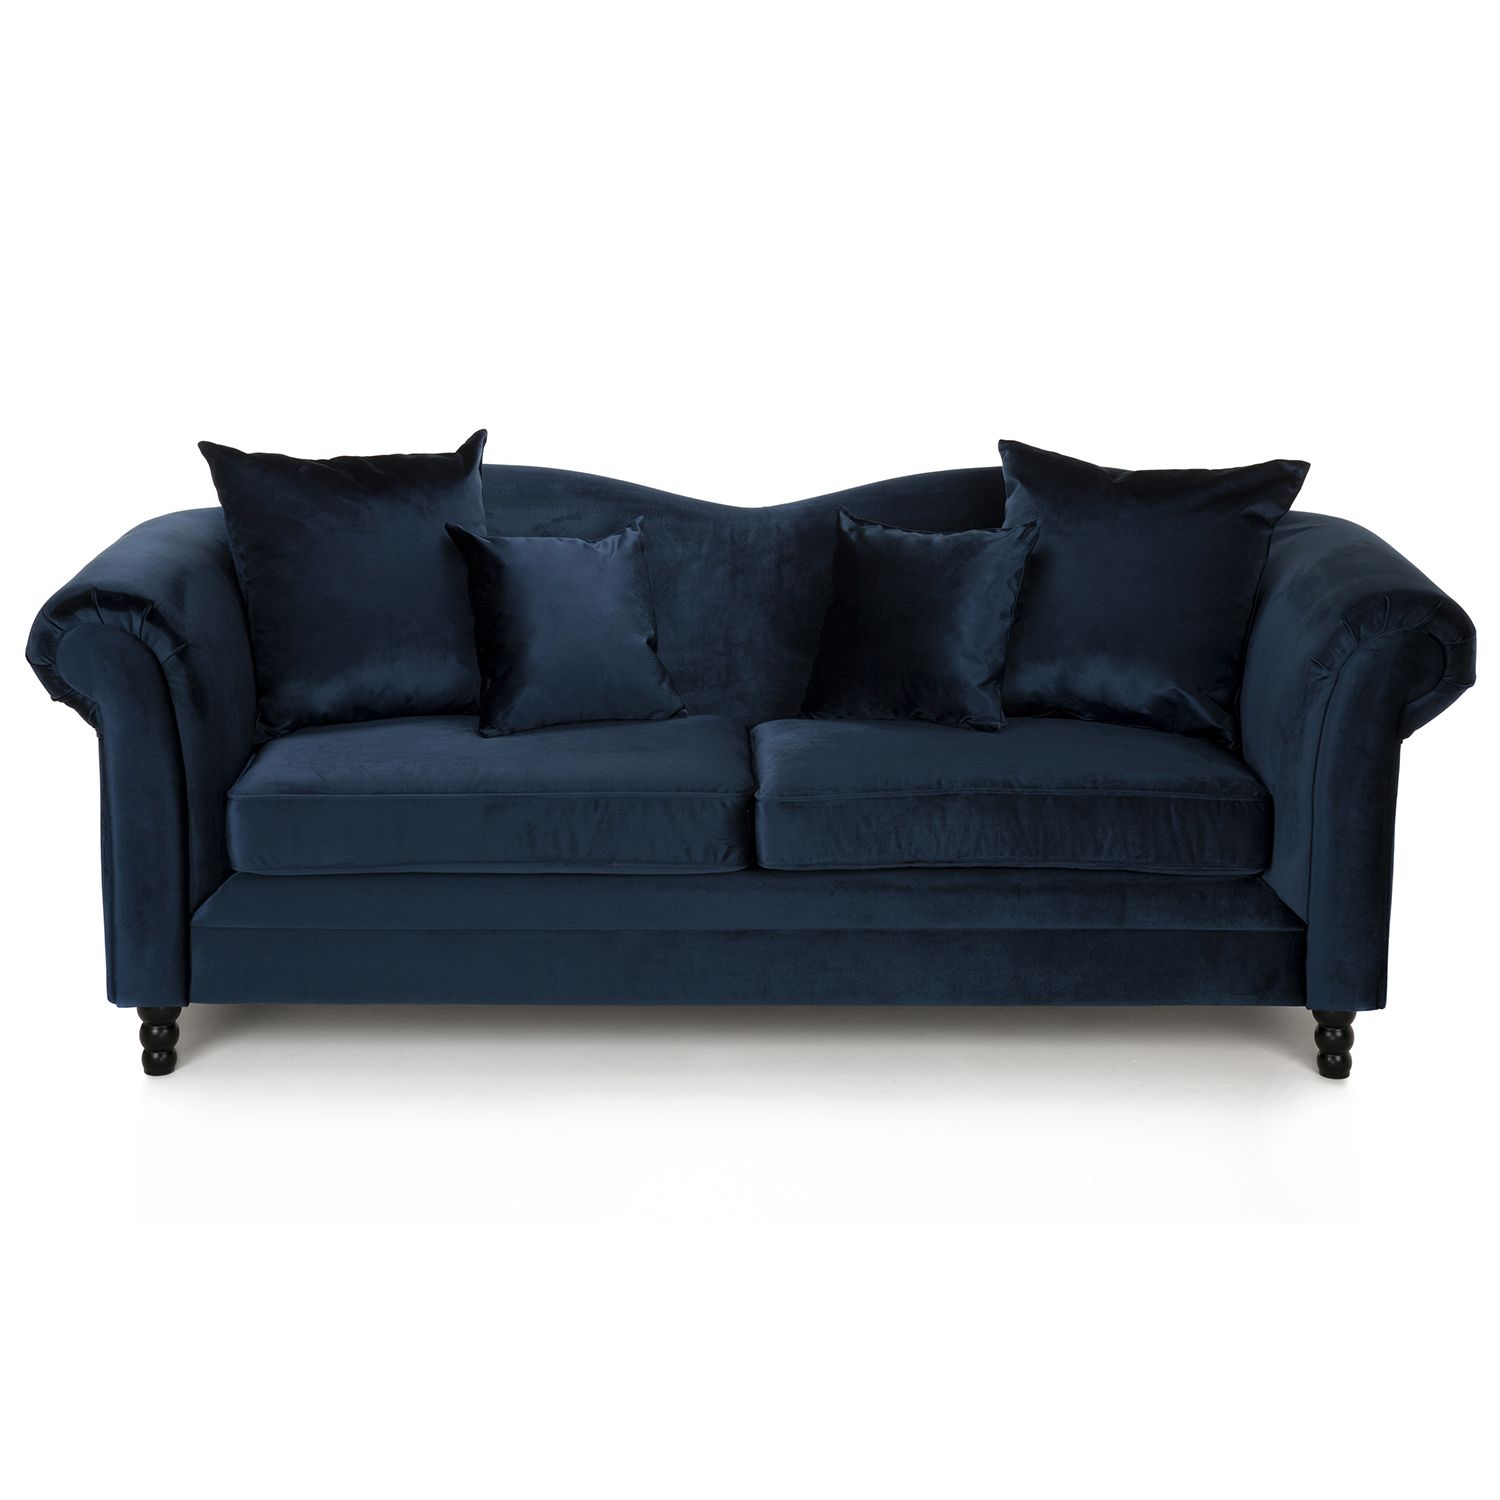 Melody 3 seater fabric sofa next day delivery melody 3 seater melody 3 seater fabric sofa next day delivery melody 3 seater fabric sofa from worldstores parisarafo Gallery